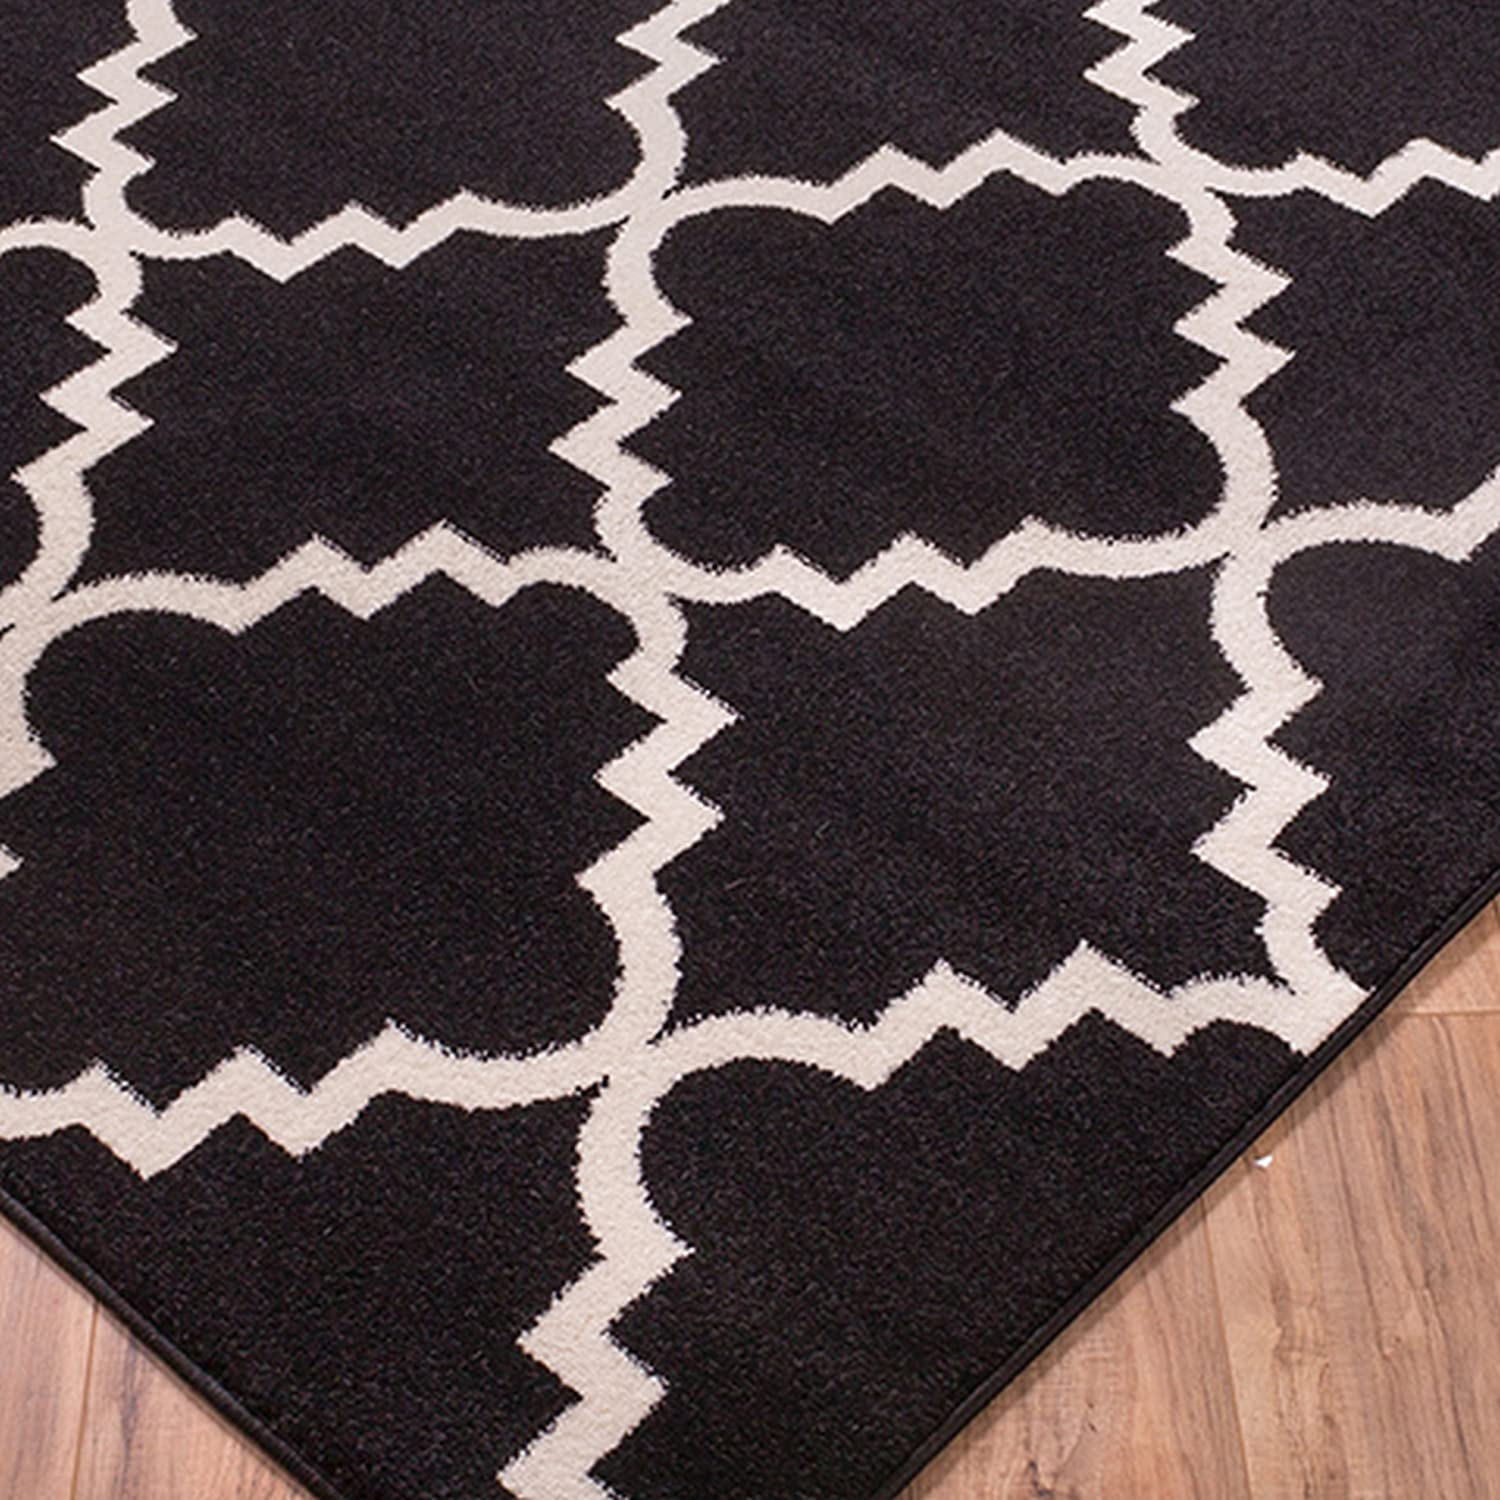 roselawnlutheran and of rugs black gold best ideas with rug area oriental image